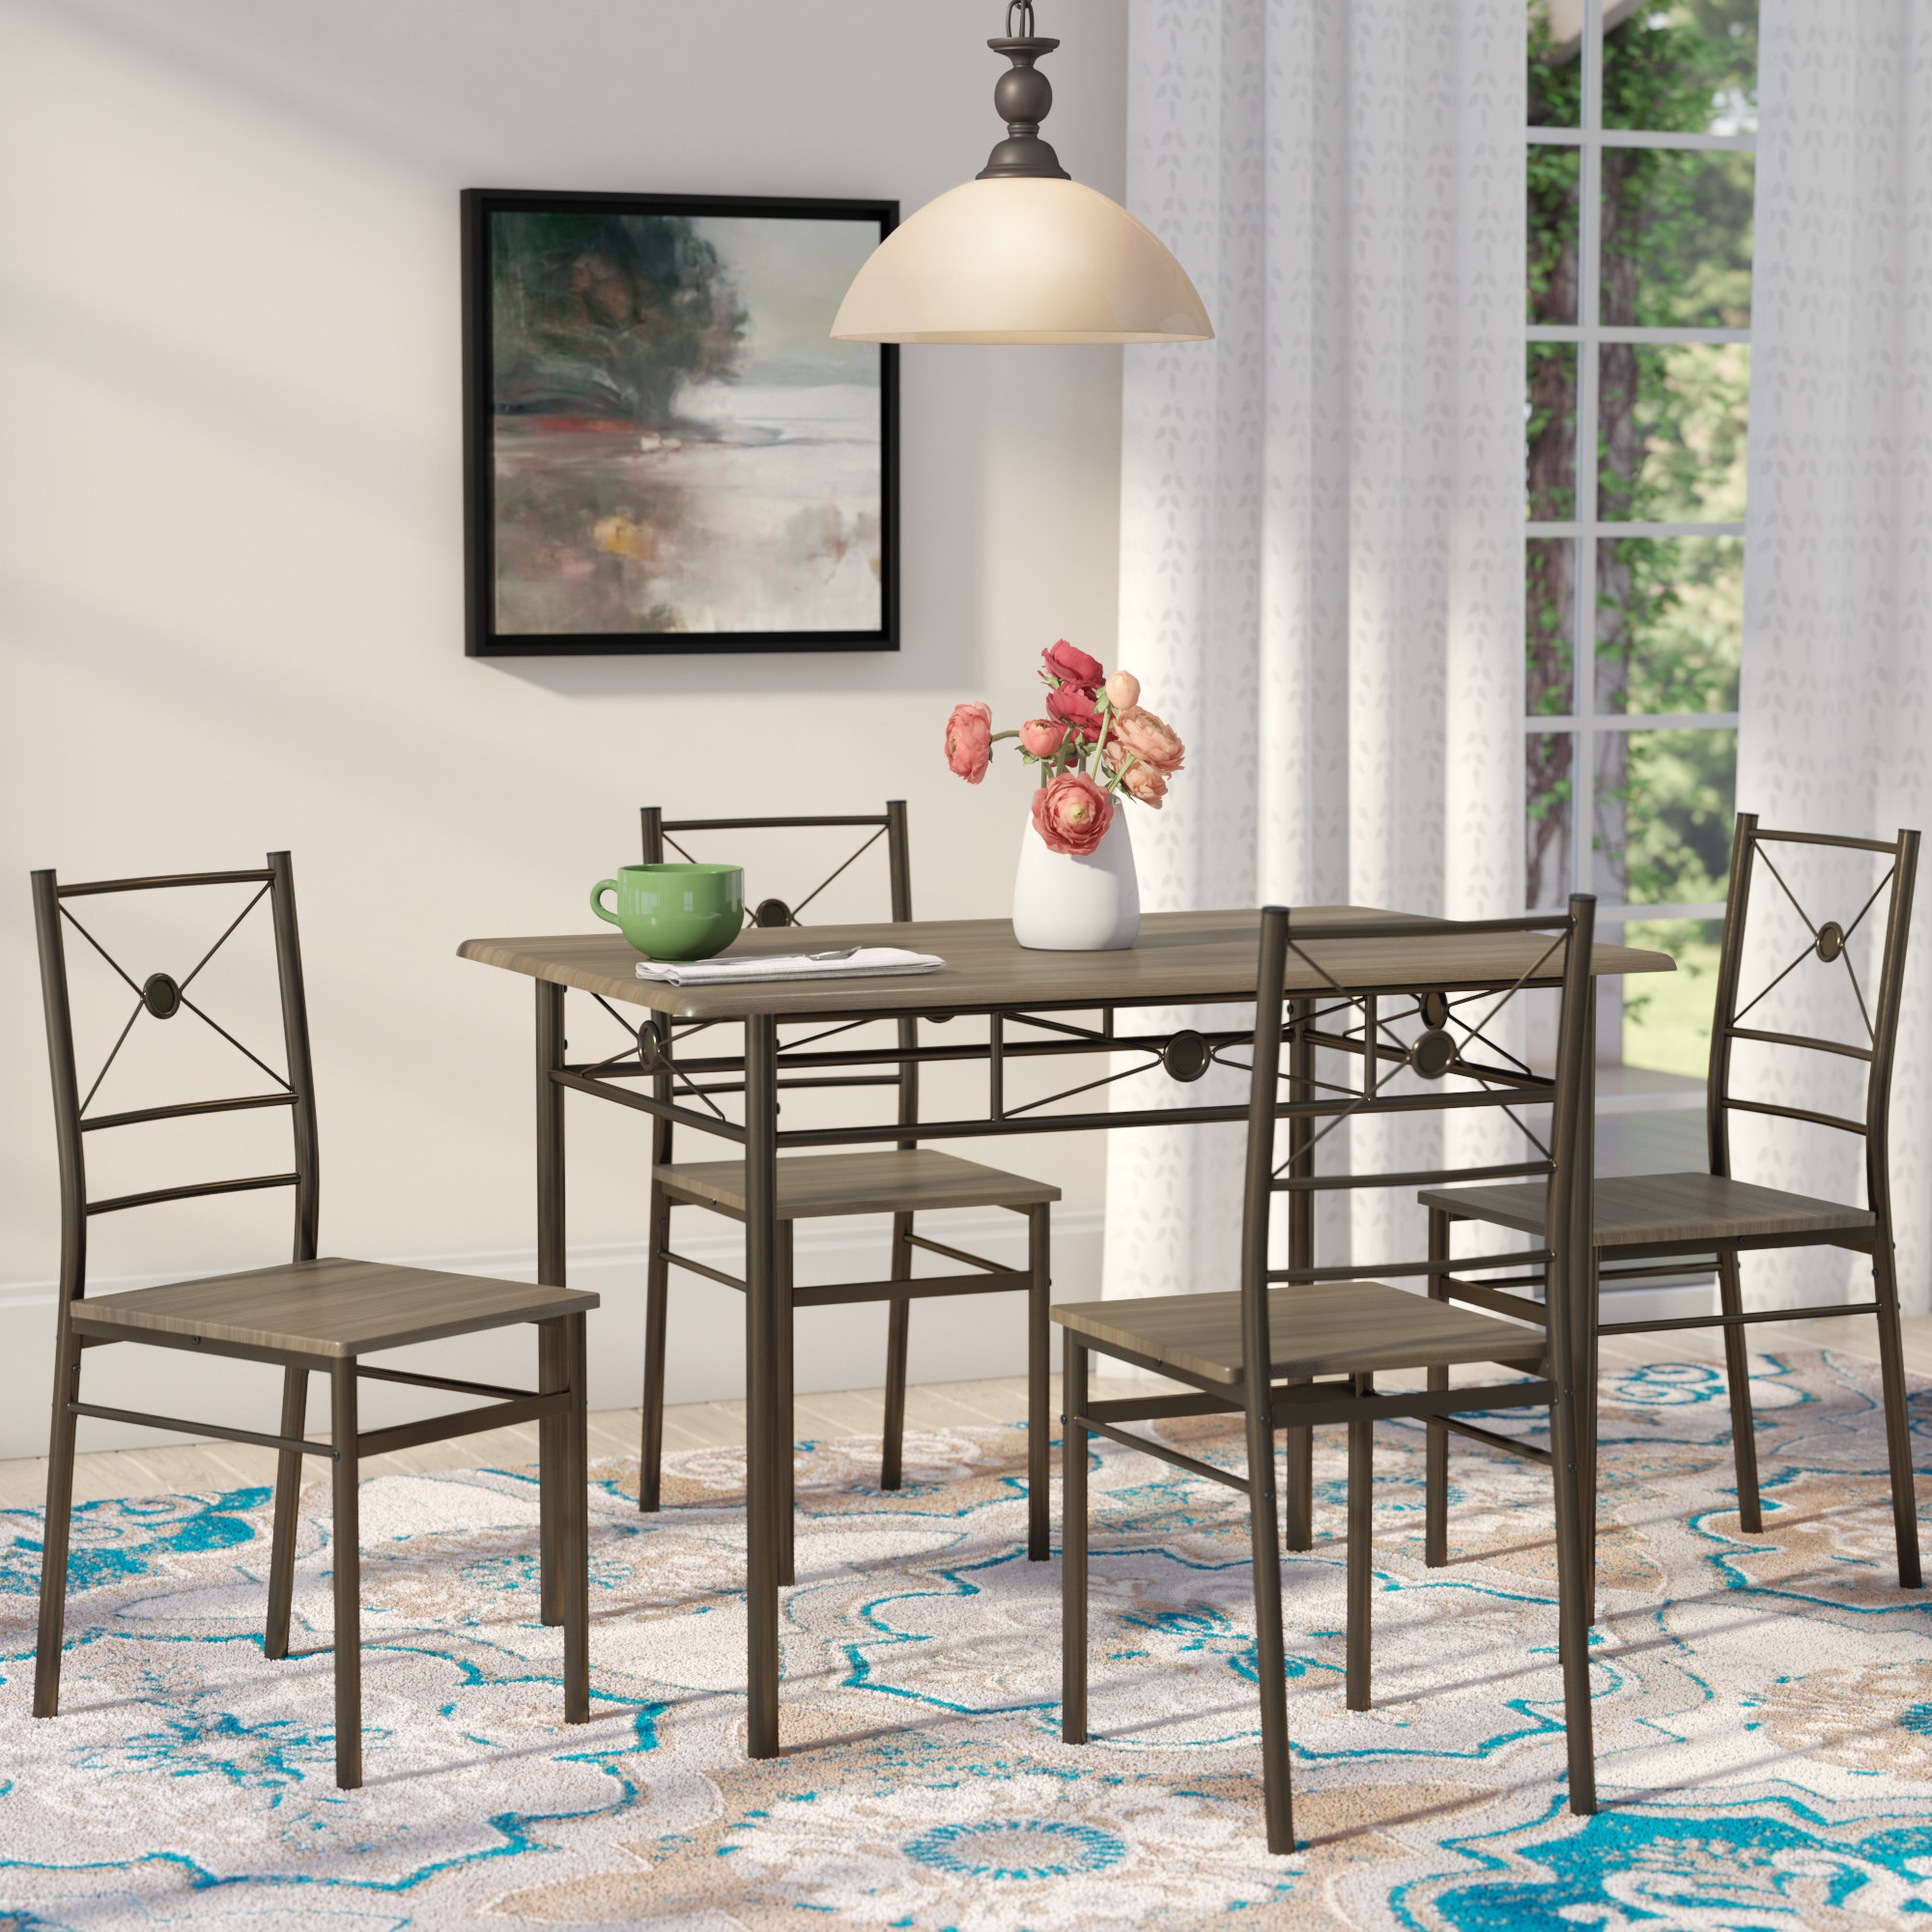 Wayfair With Newest Middleport 5 Piece Dining Sets (View 3 of 25)